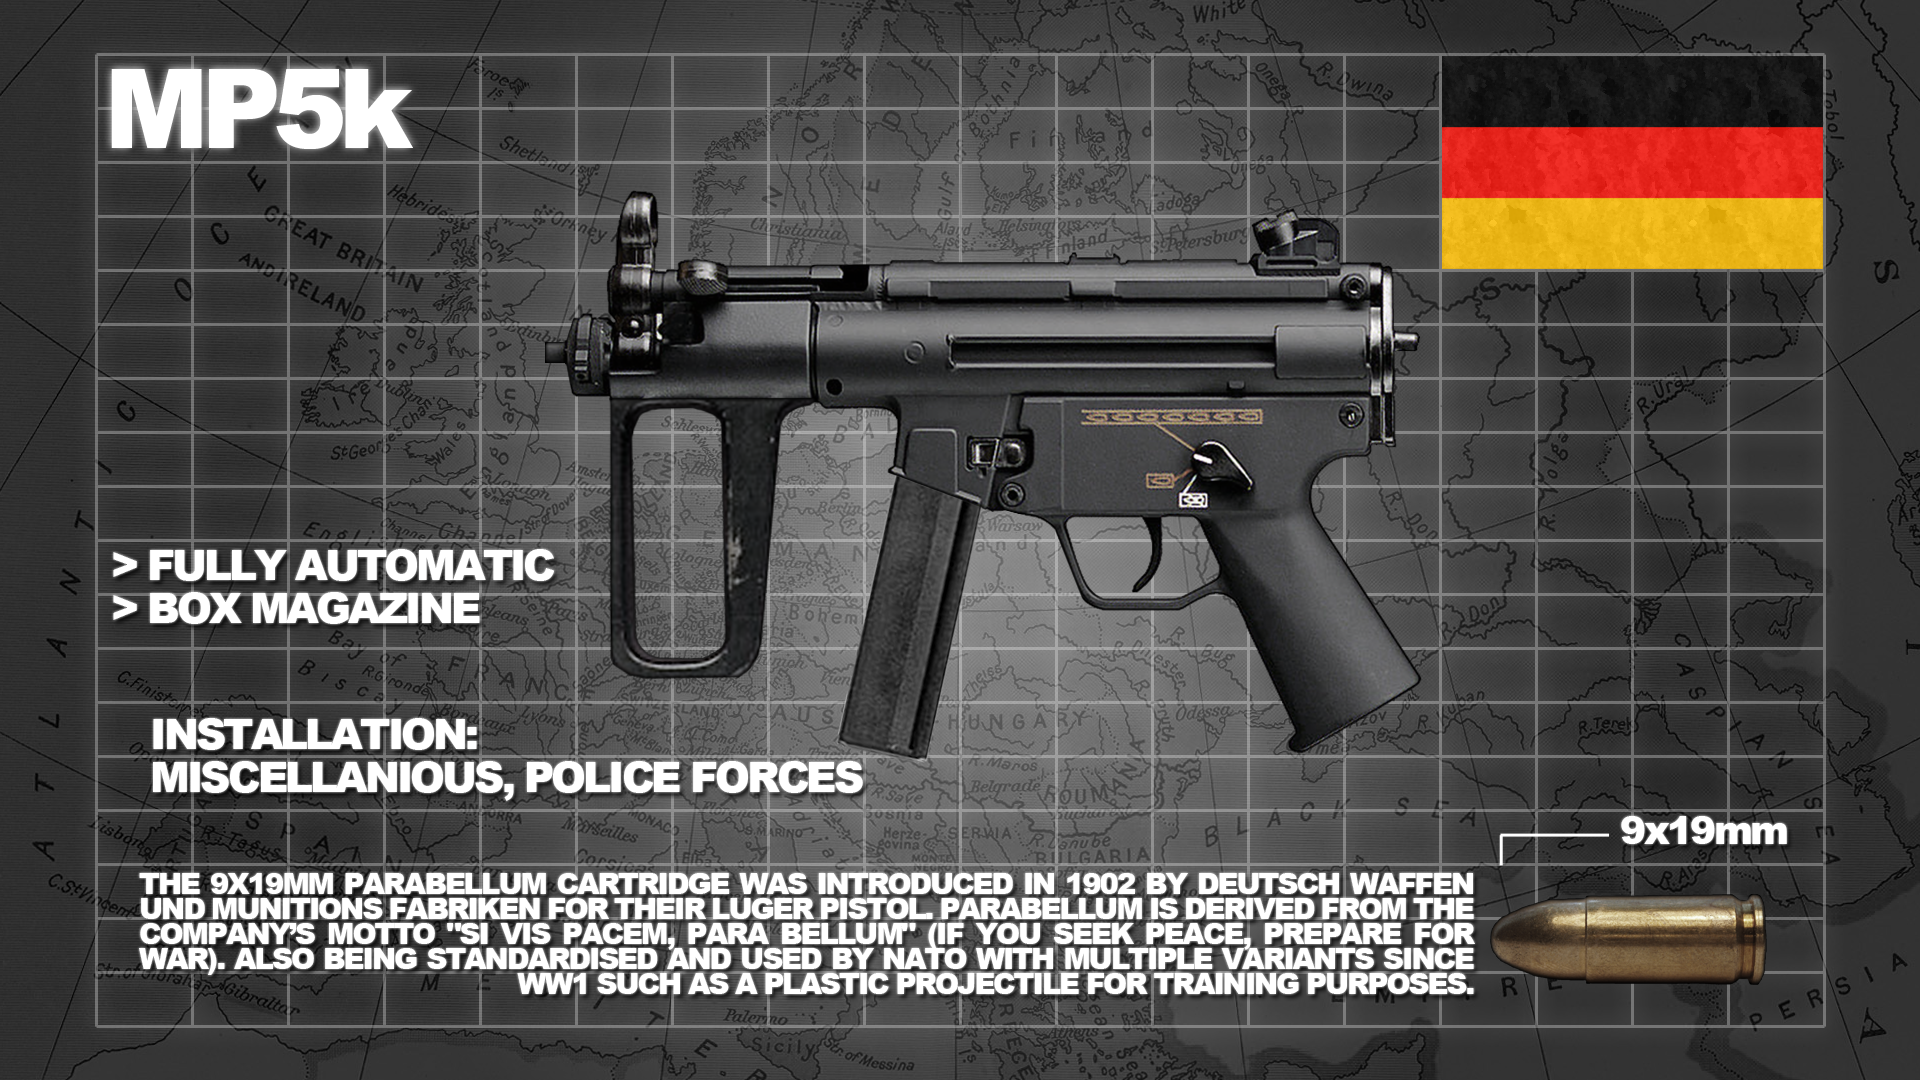 Black Ops Mp5k Related...